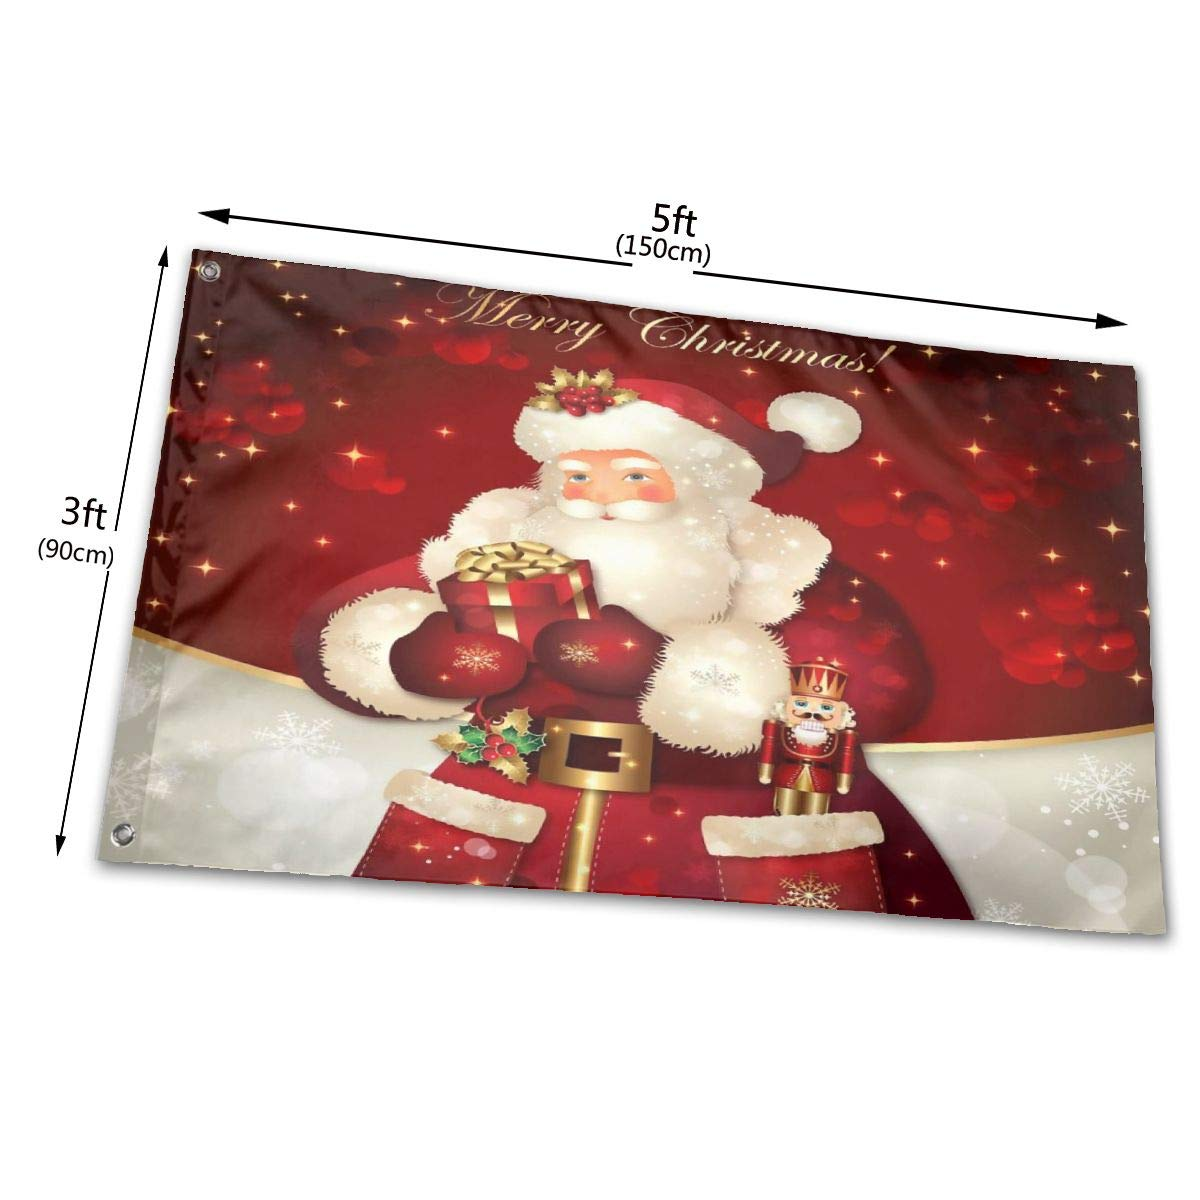 TS HOME ART 3x5 Foot Decorative Flag Merry Christmas Santa Present Outdoor Funny Floral Decorative Flags for Garden Yard Lawn Single Sided